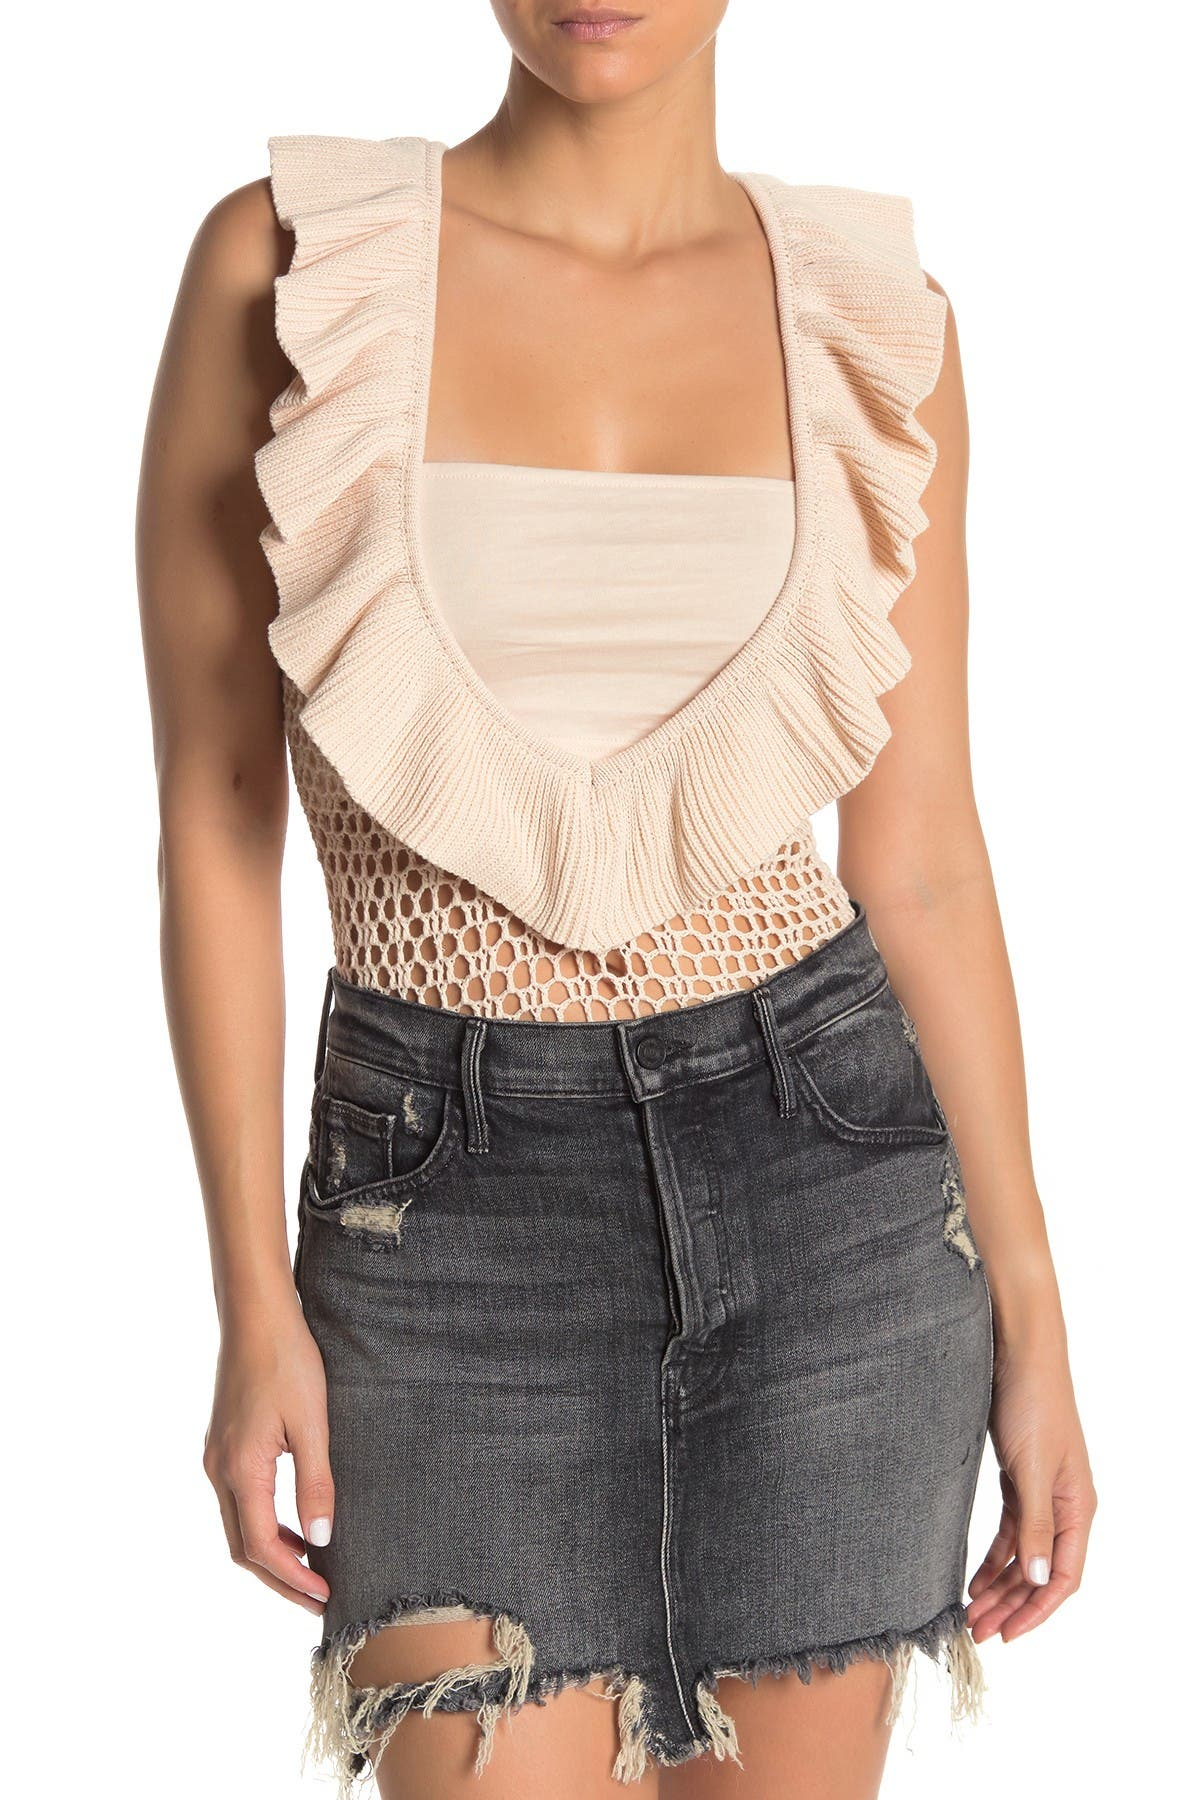 Image of KENDALL AND KYLIE Crochet Ruffle Bodysuit